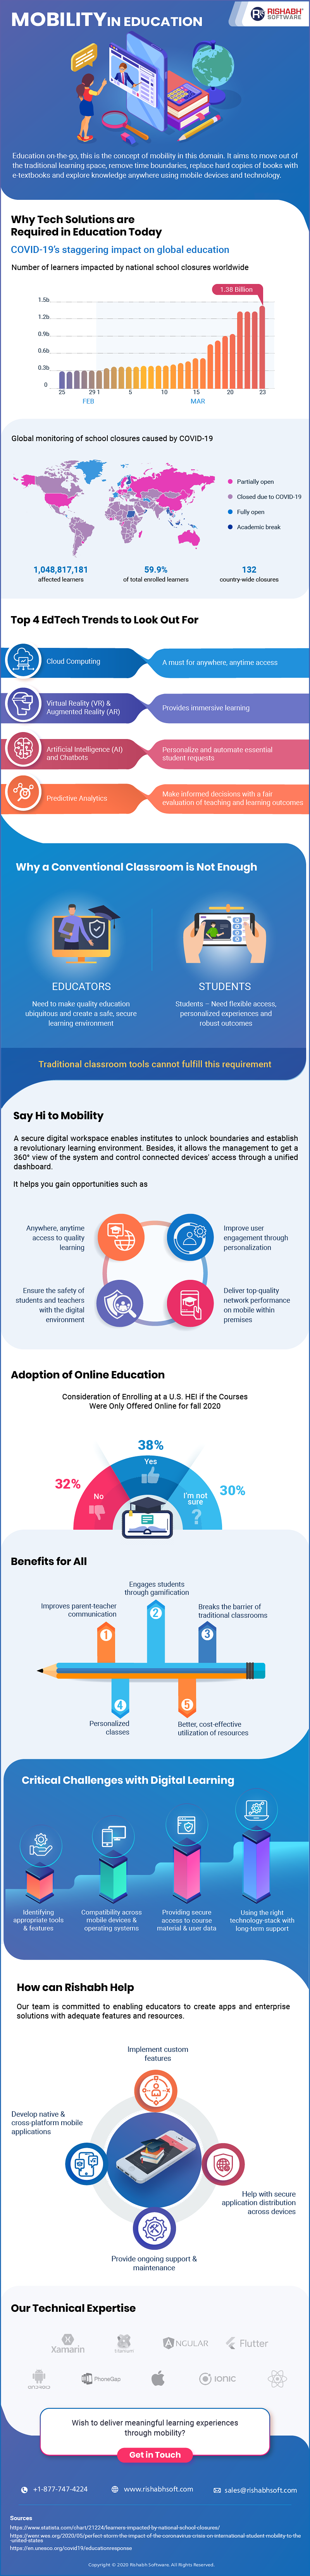 Mobility in Education Industry Infographic